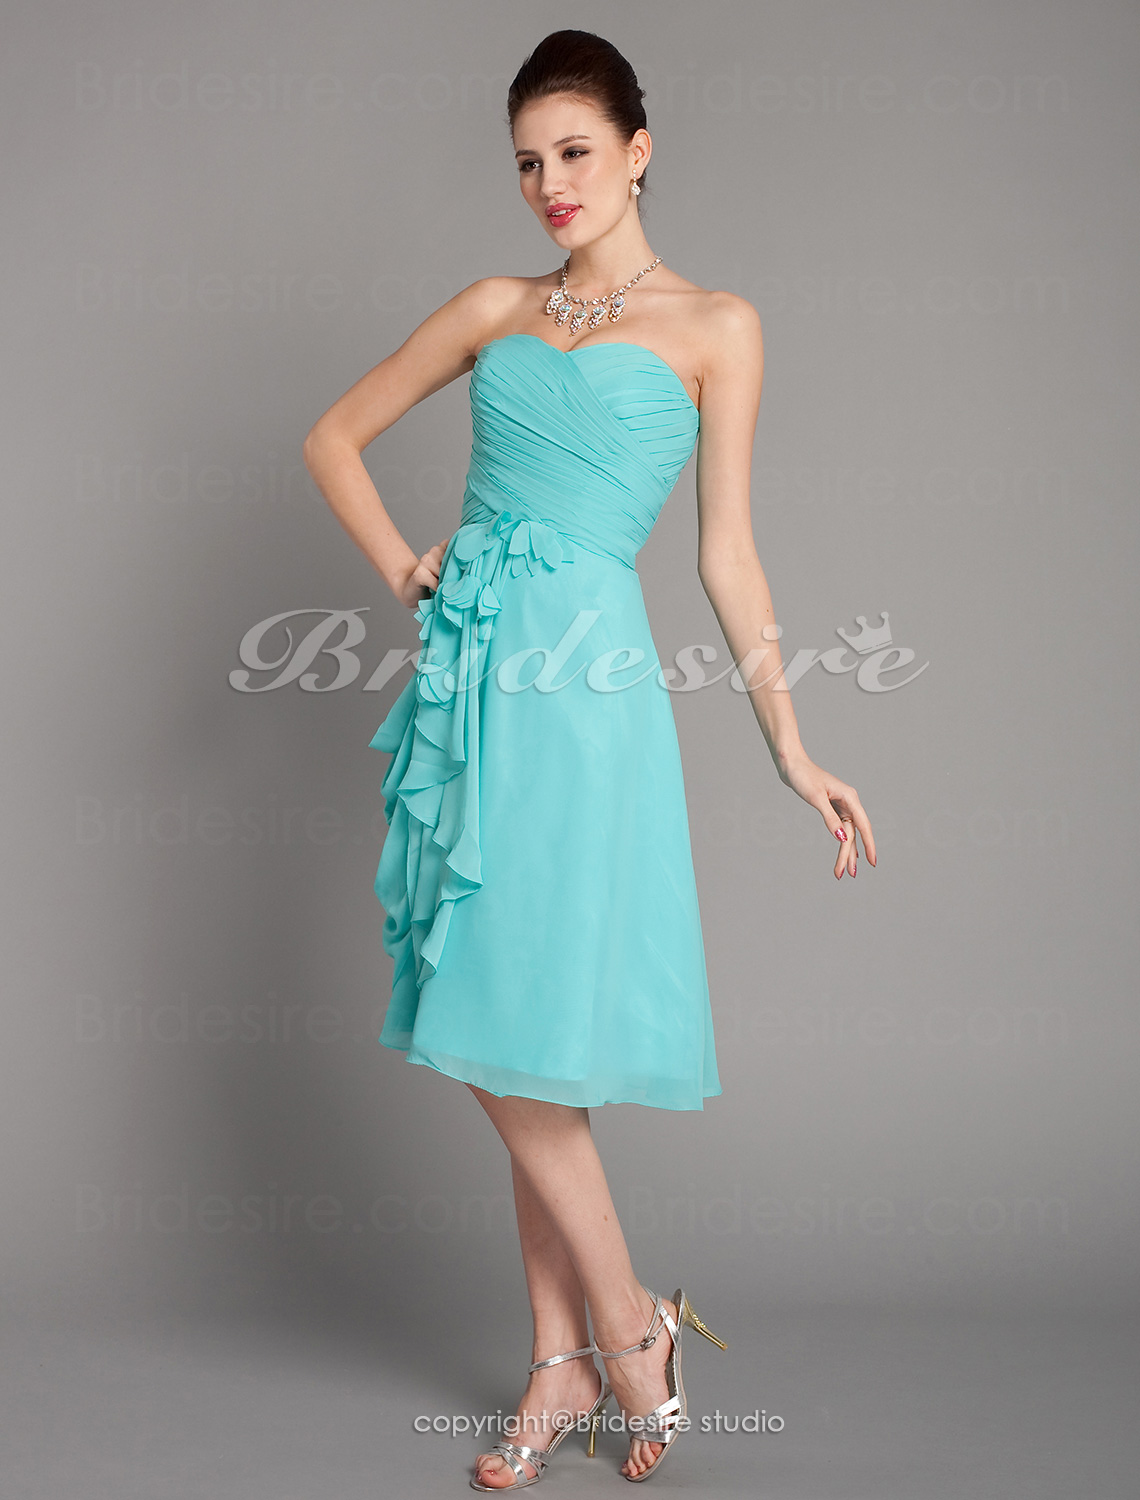 Sheath/ Column Chiffon Knee-length Sweetheart Bridesmaid Dress